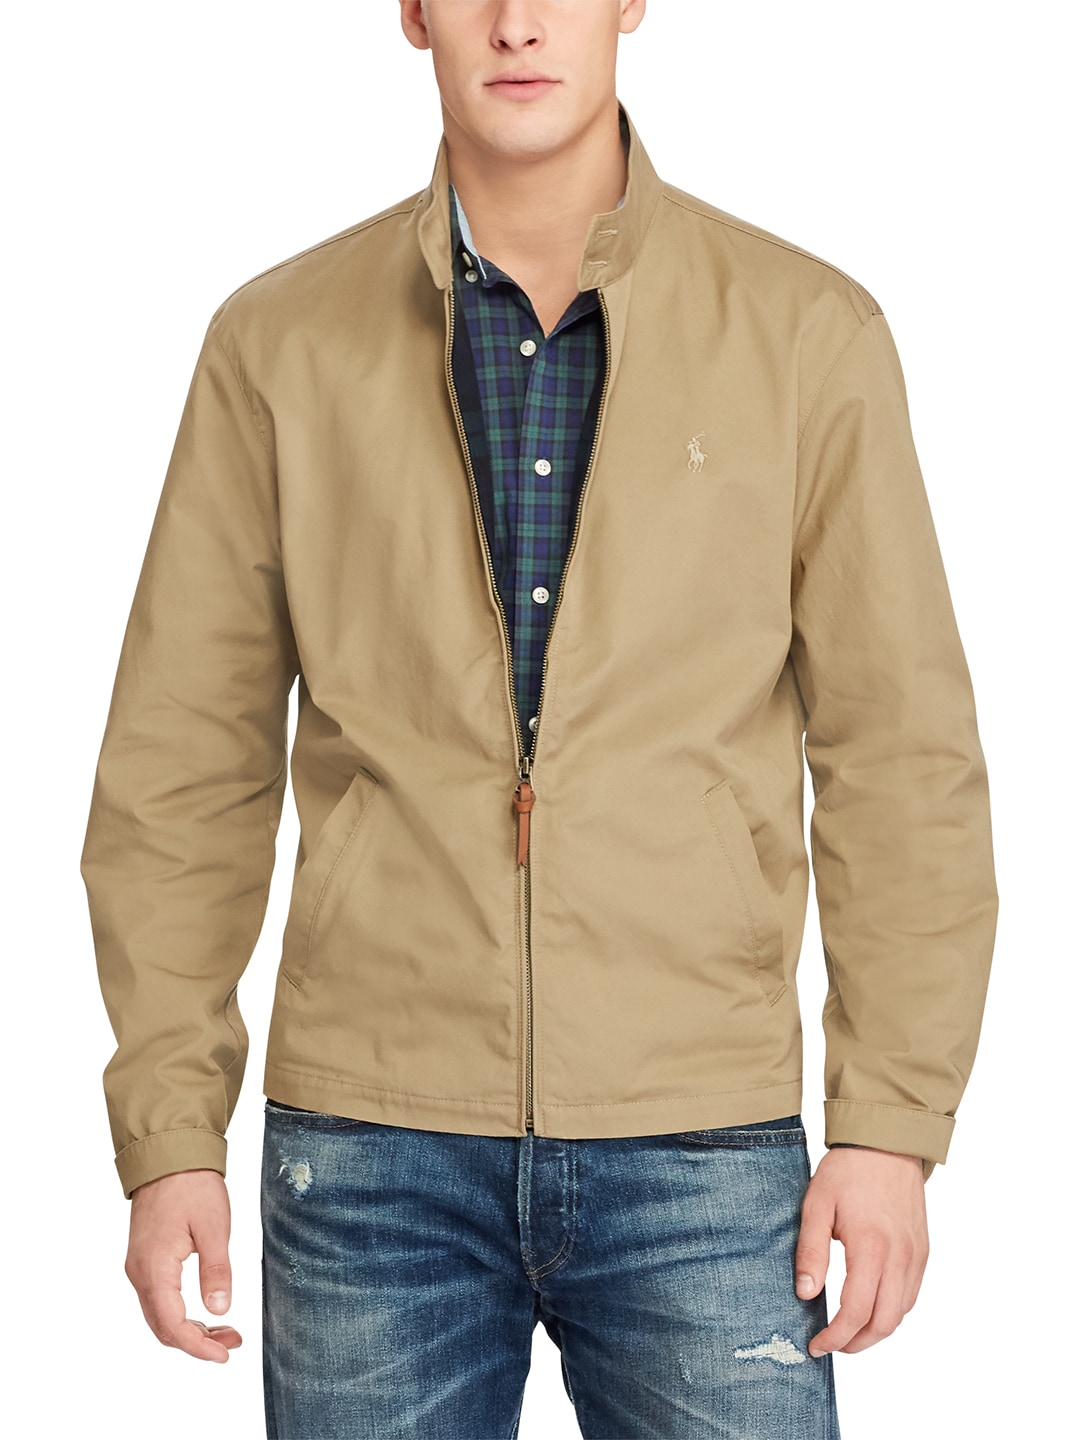 d8603bfaeb6 Stand Collar Jacket - Buy Stand Collar Jackets Online in India